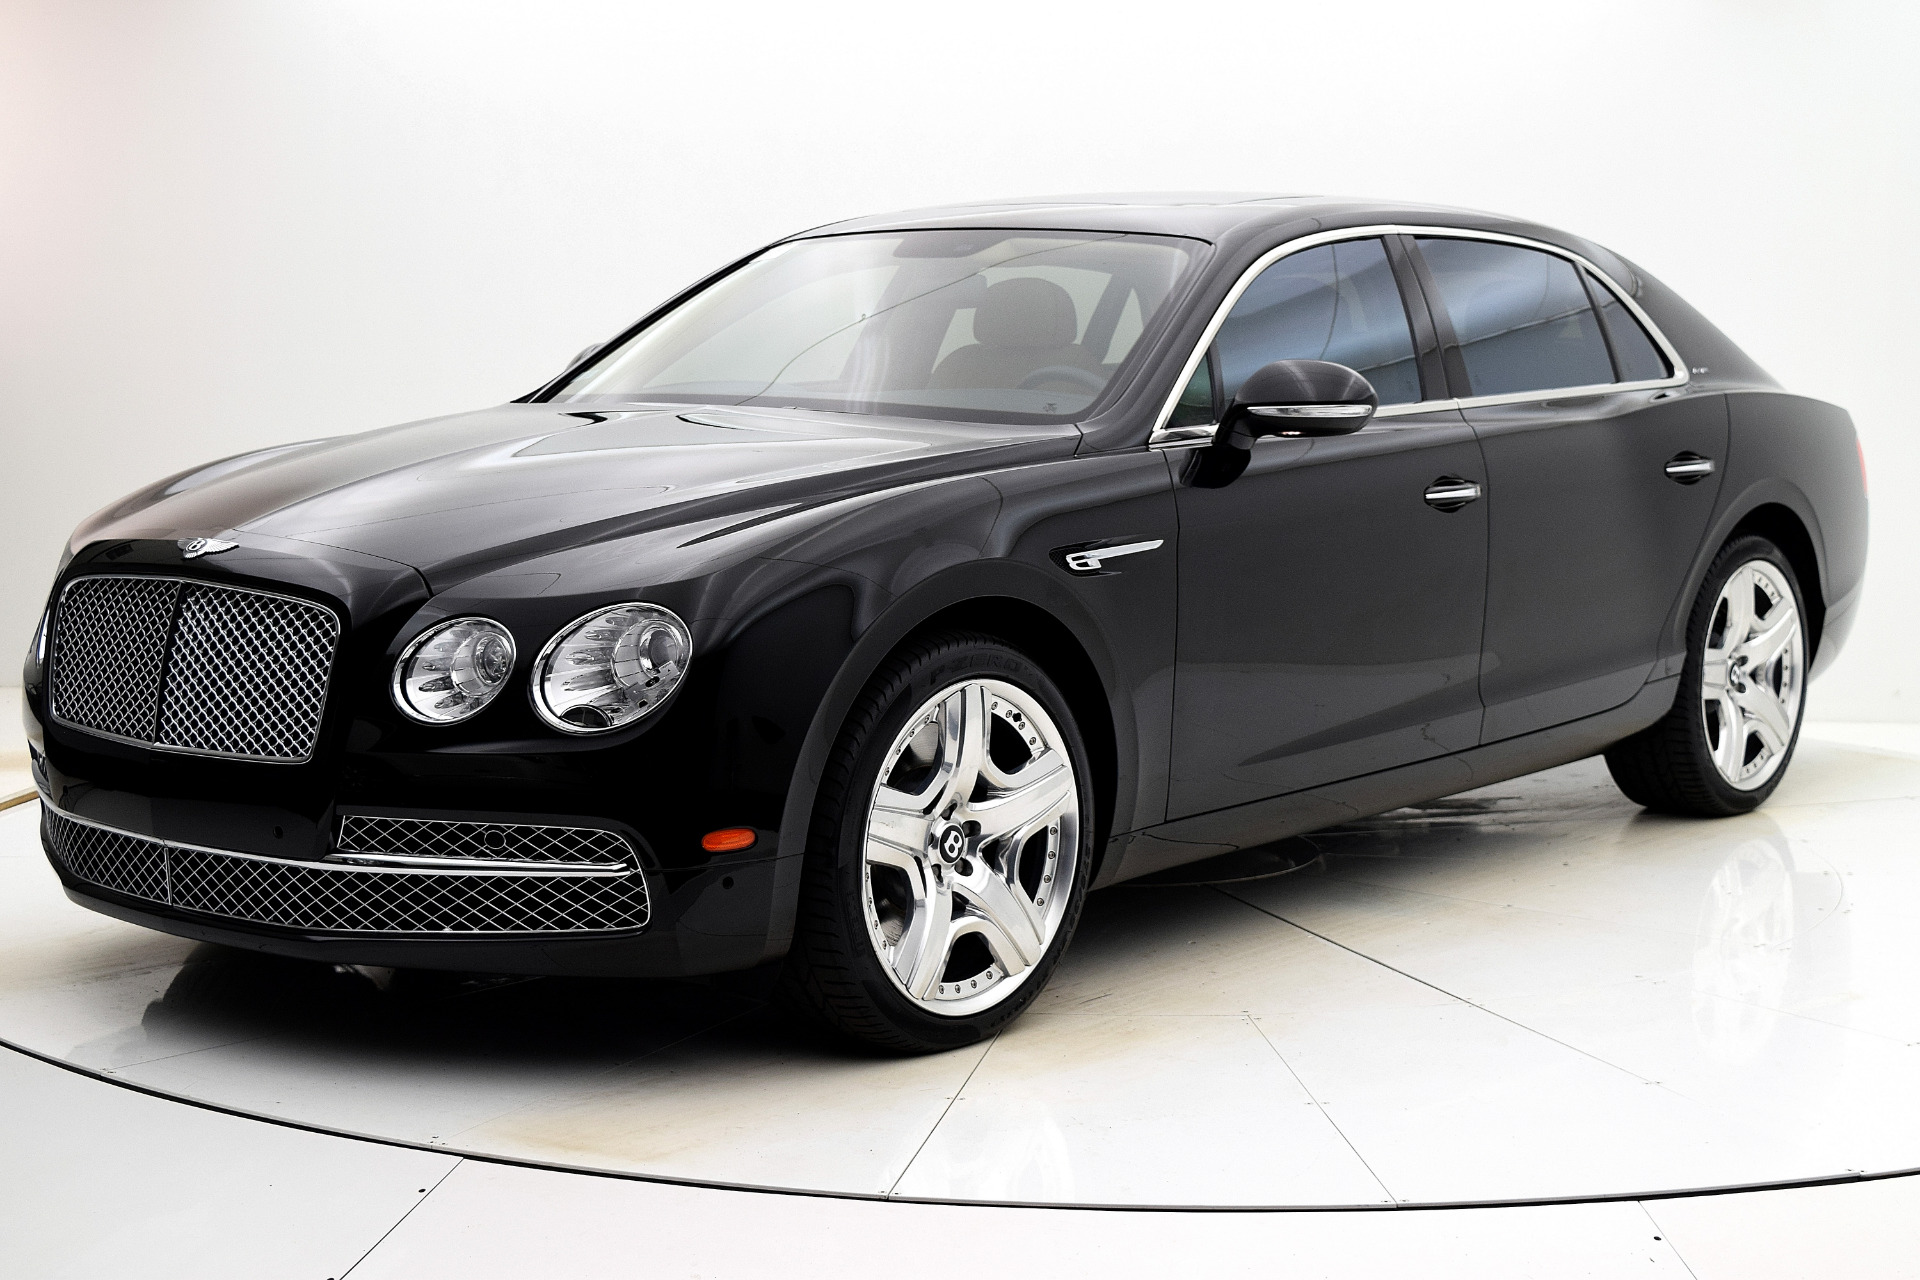 Used 2014 Bentley Flying Spur W12 for sale $114,880 at F.C. Kerbeck Aston Martin in Palmyra NJ 08065 2